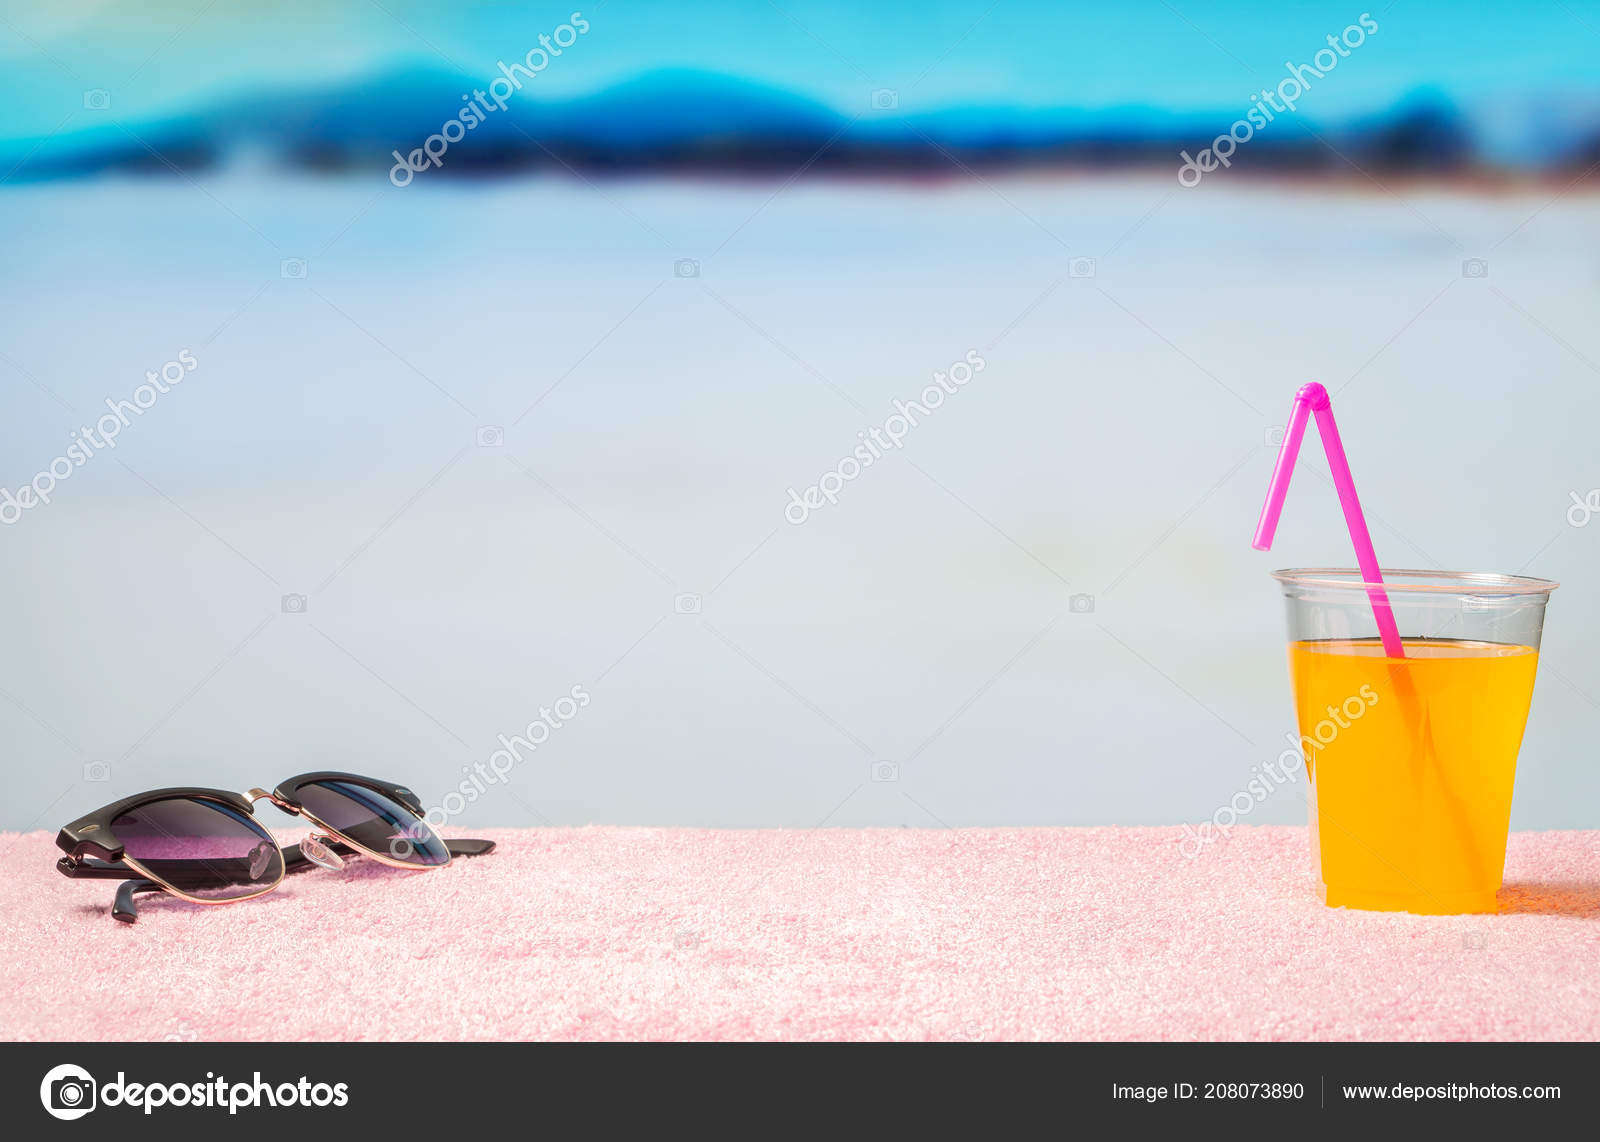 Vacation Background Free Blank Copy Space Sunglasses Yellow Cocktail Pink Stock Photo C Terovesalainen 208073890